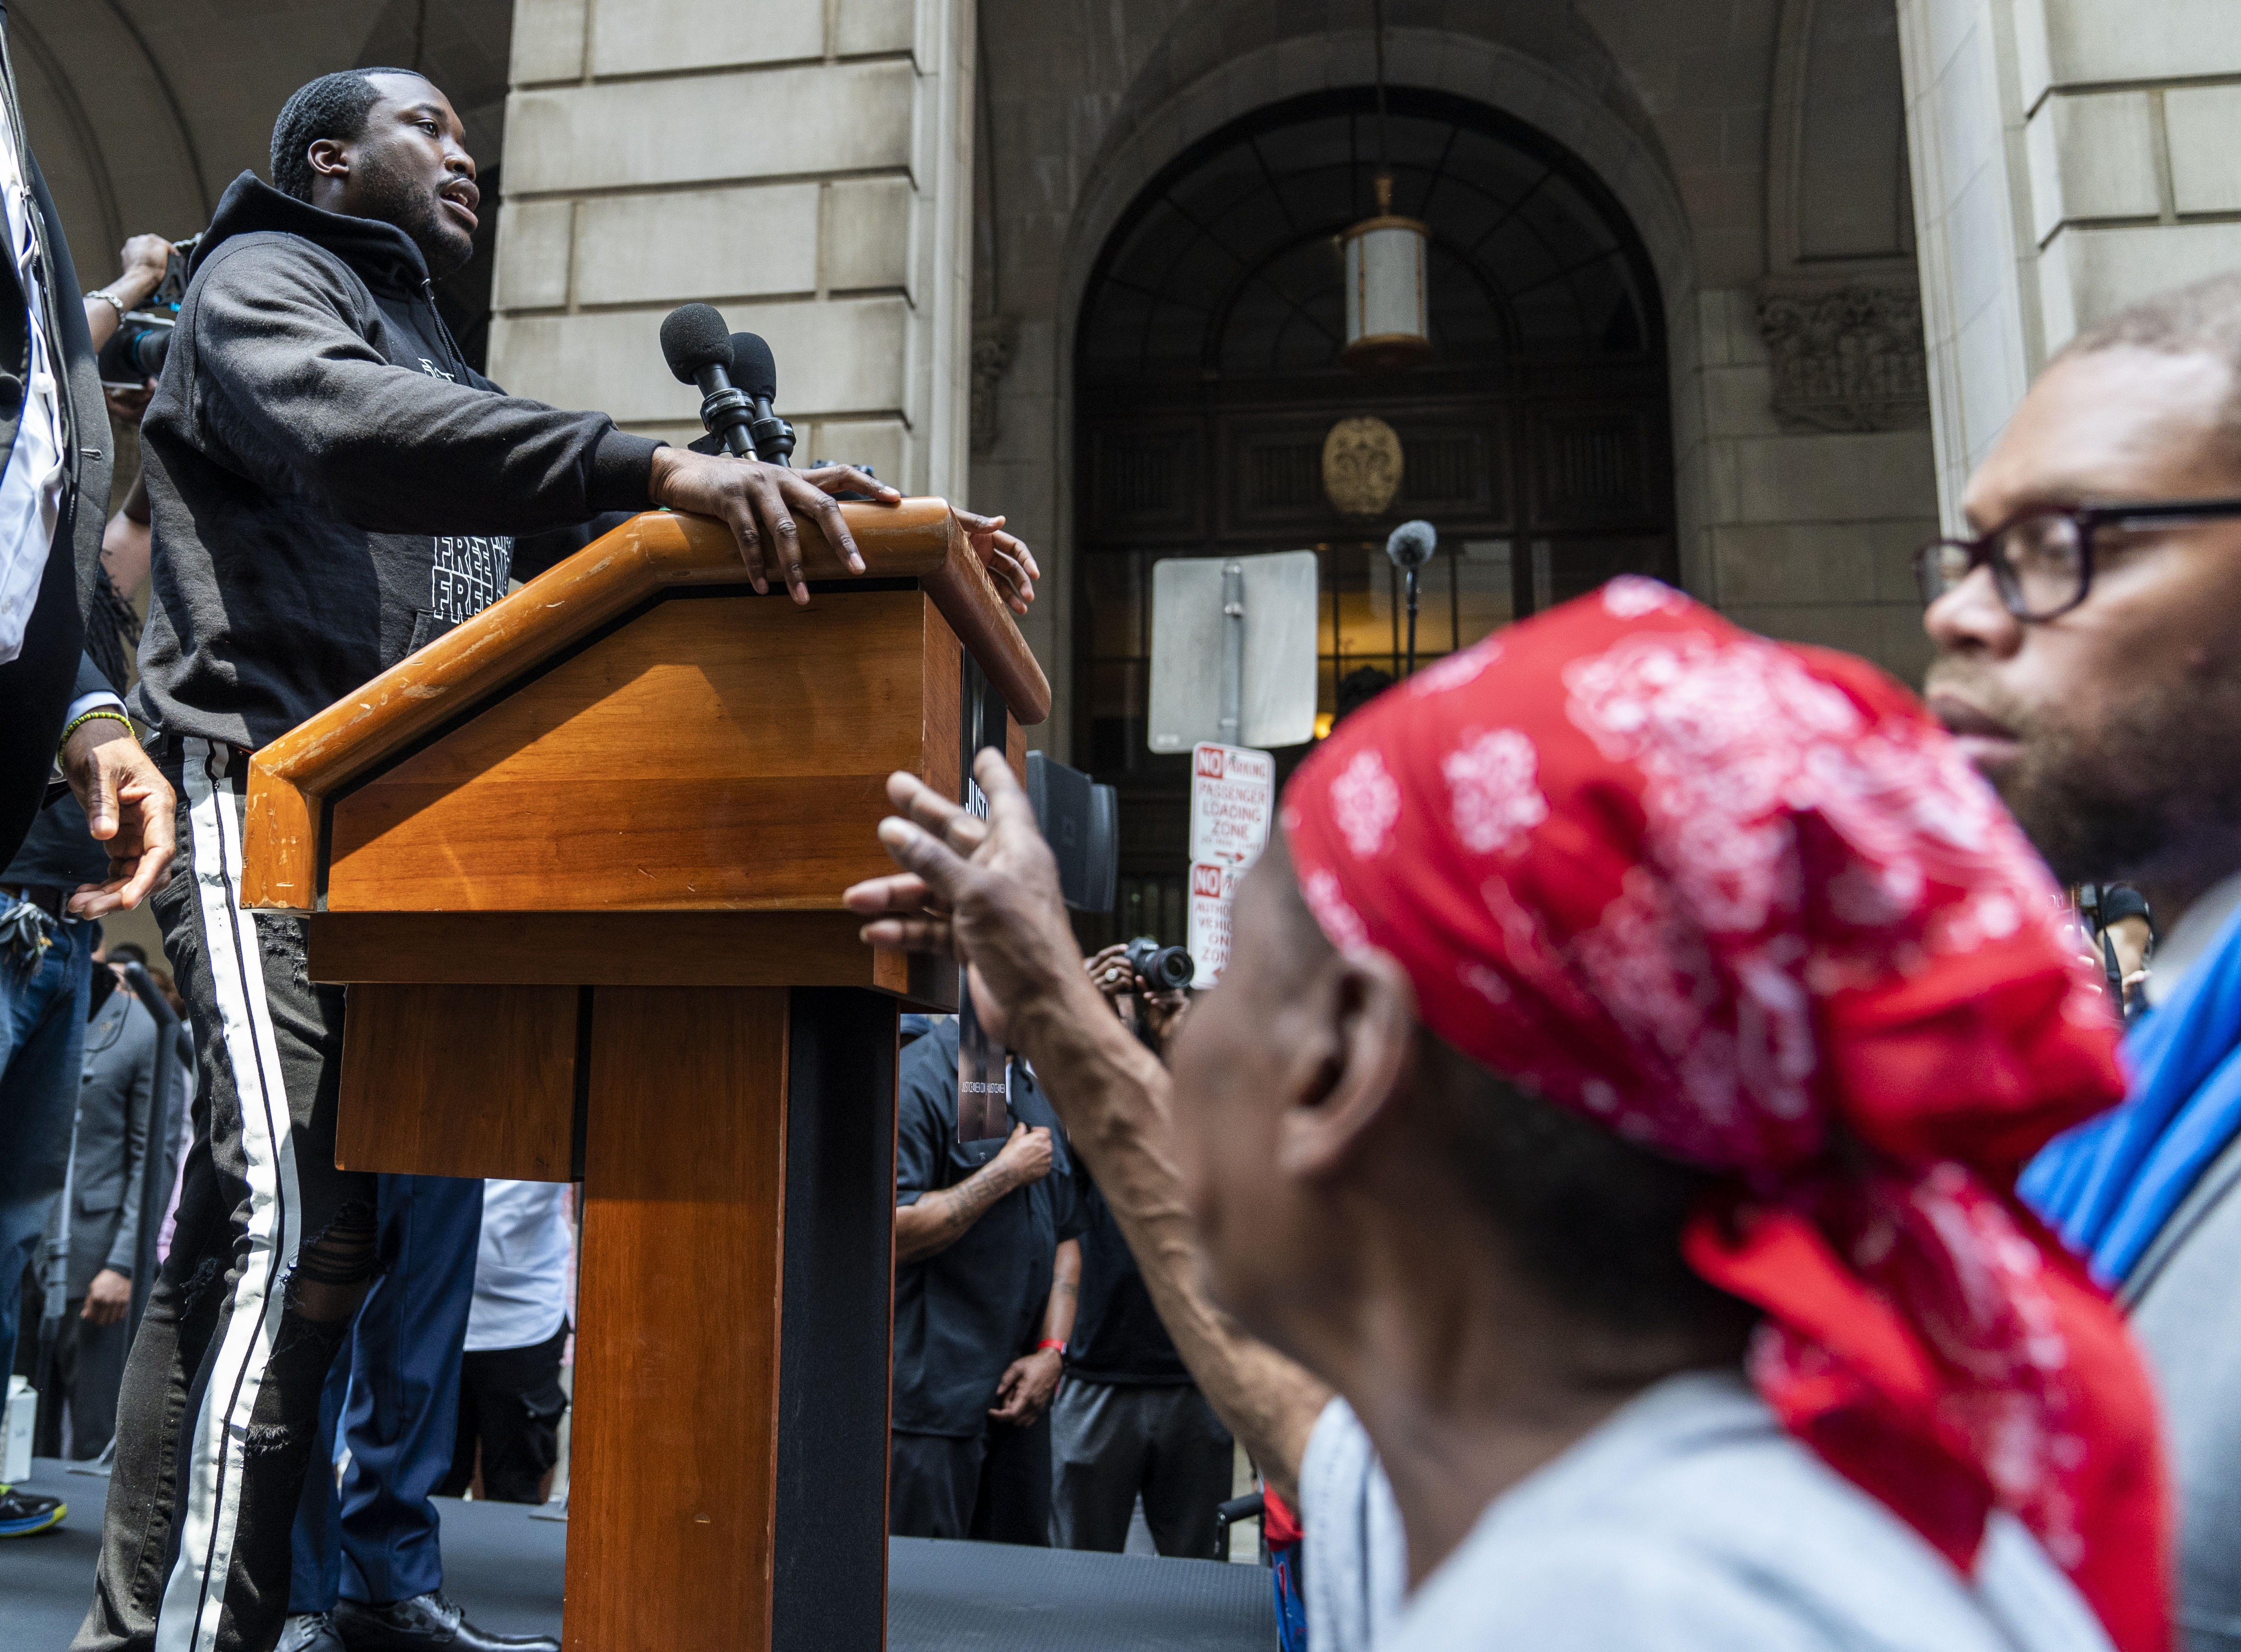 Rapper Meek Mill participates in a rally before he returns to court for a post-conviction appeal on June 18, 2018 in Philadelphia, Pennsylvania. Organizers of the 'Stand With Meek Mill' rally are calling for the judge to grant the rapper a new trial over a 2007 drug and guns case., which his lawyers have repeatedly asked for and which the District Attorney's Office does not oppose.